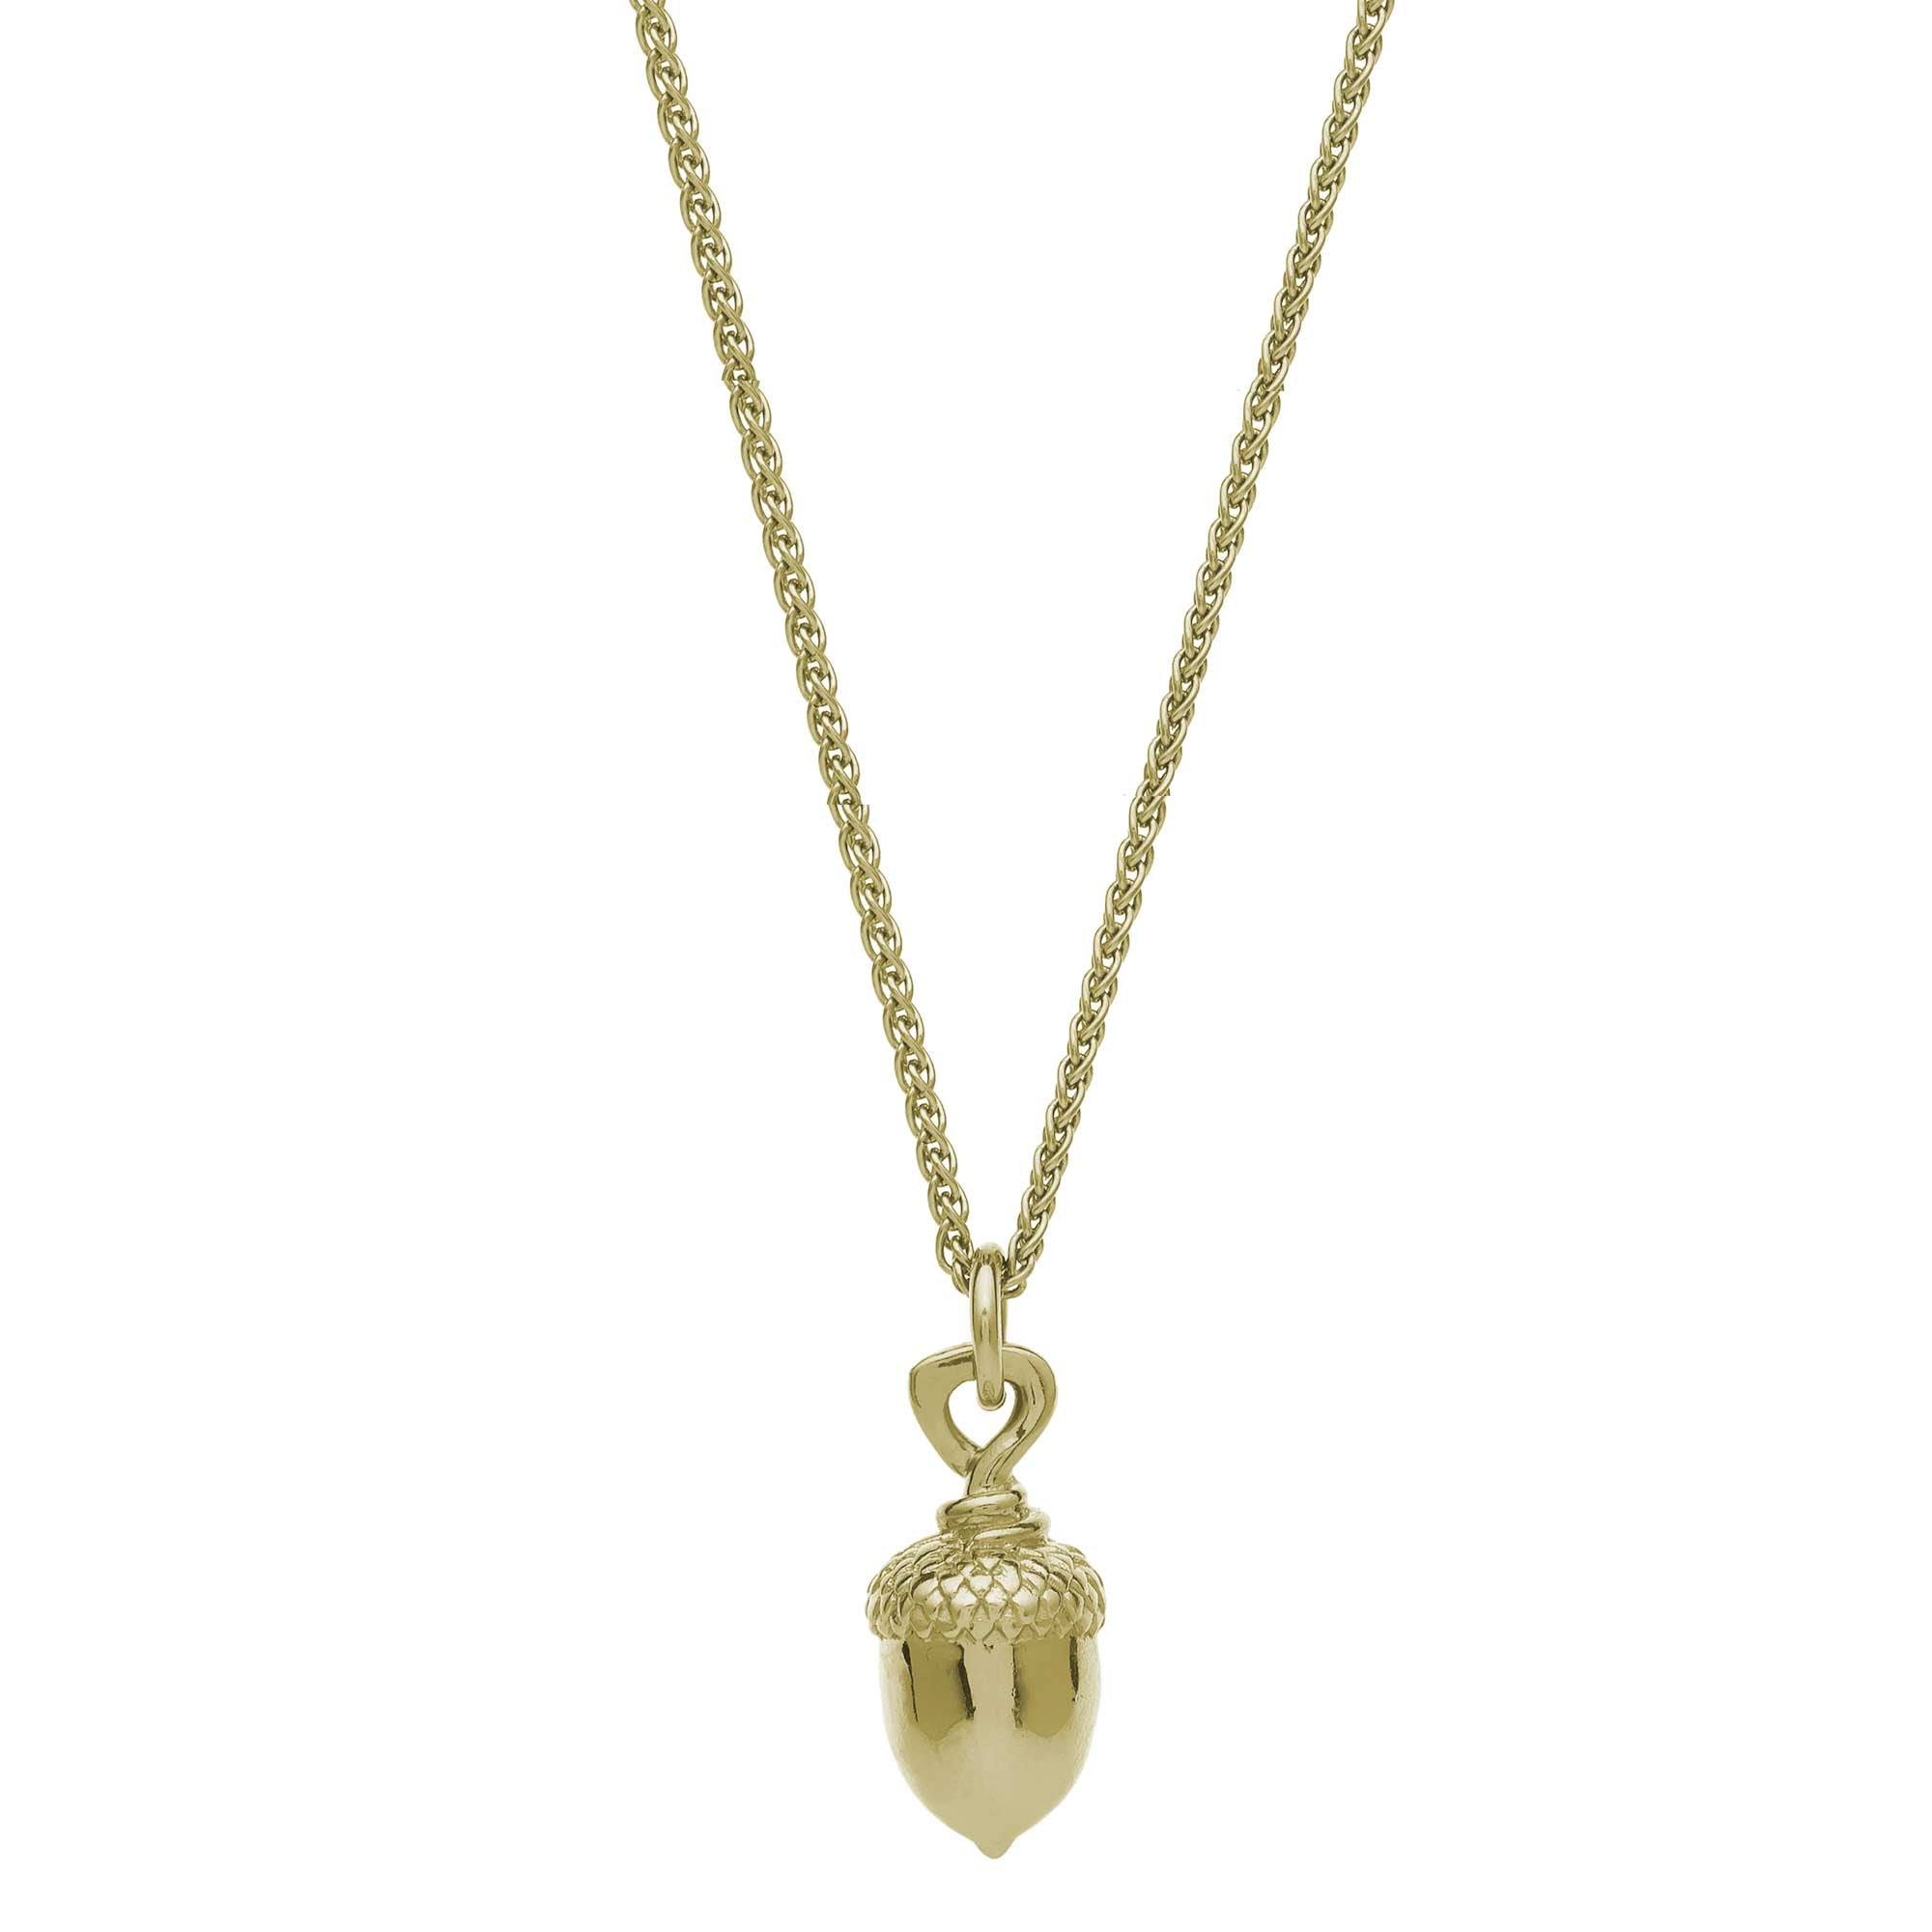 Solid gold acorn necklace handmade UK Designer Scarlett Jewellery